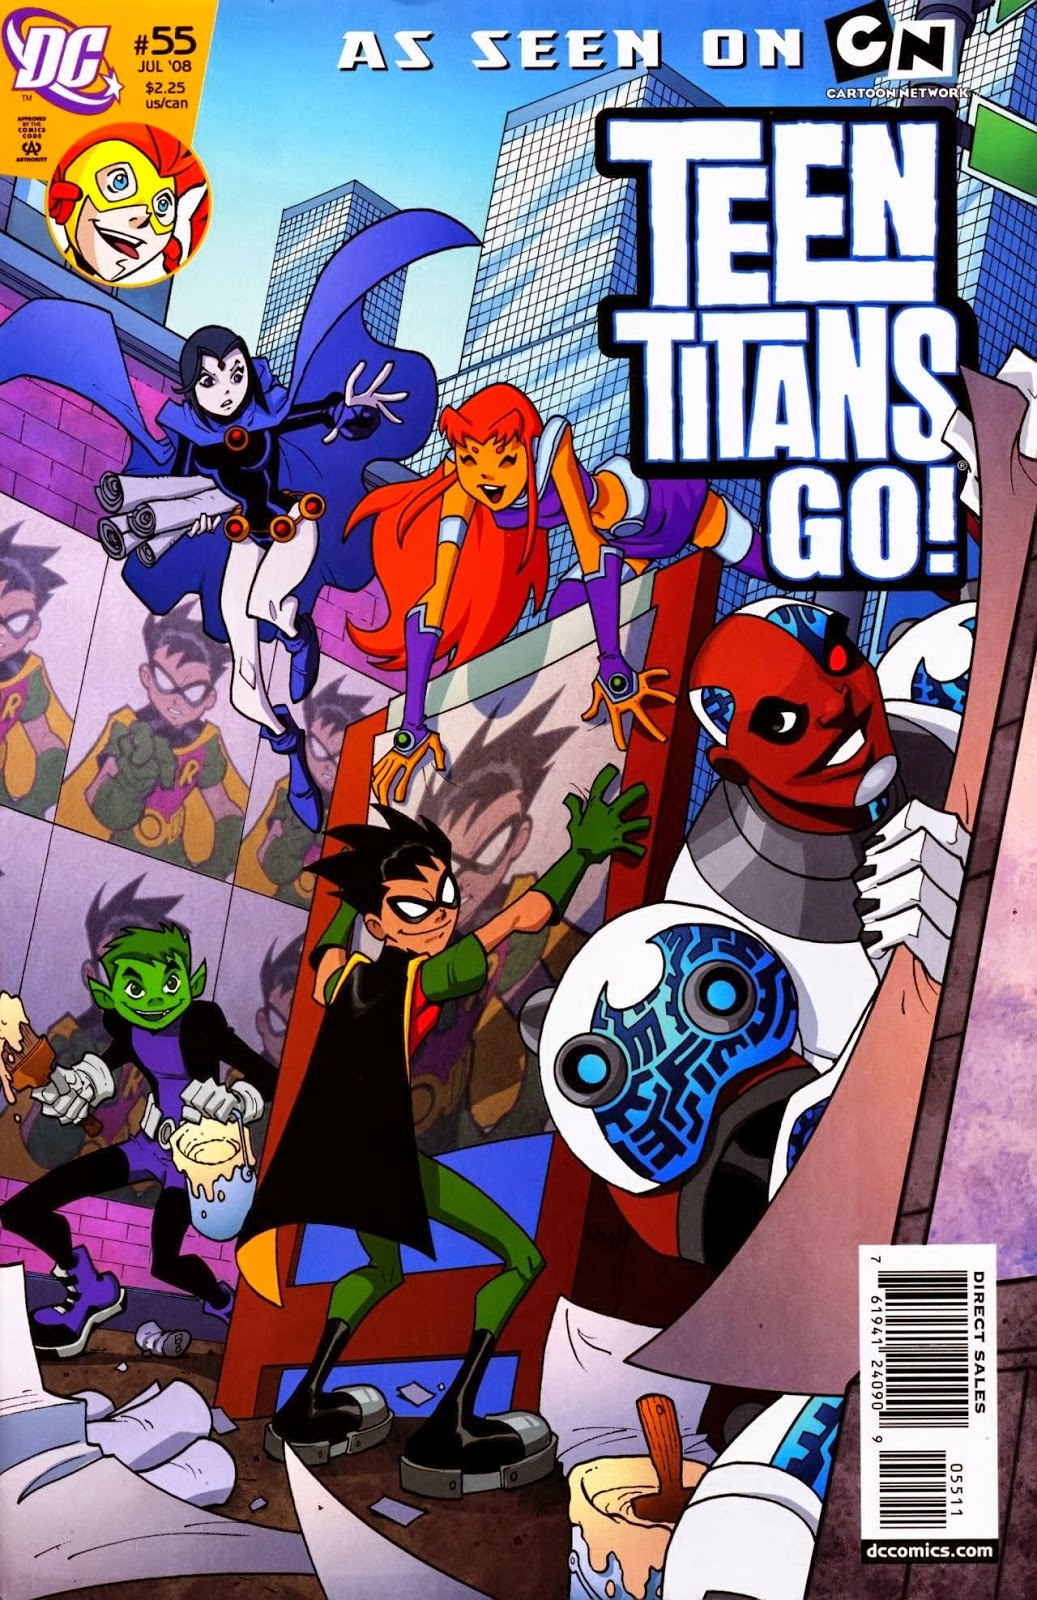 Teen titans comic book were visited